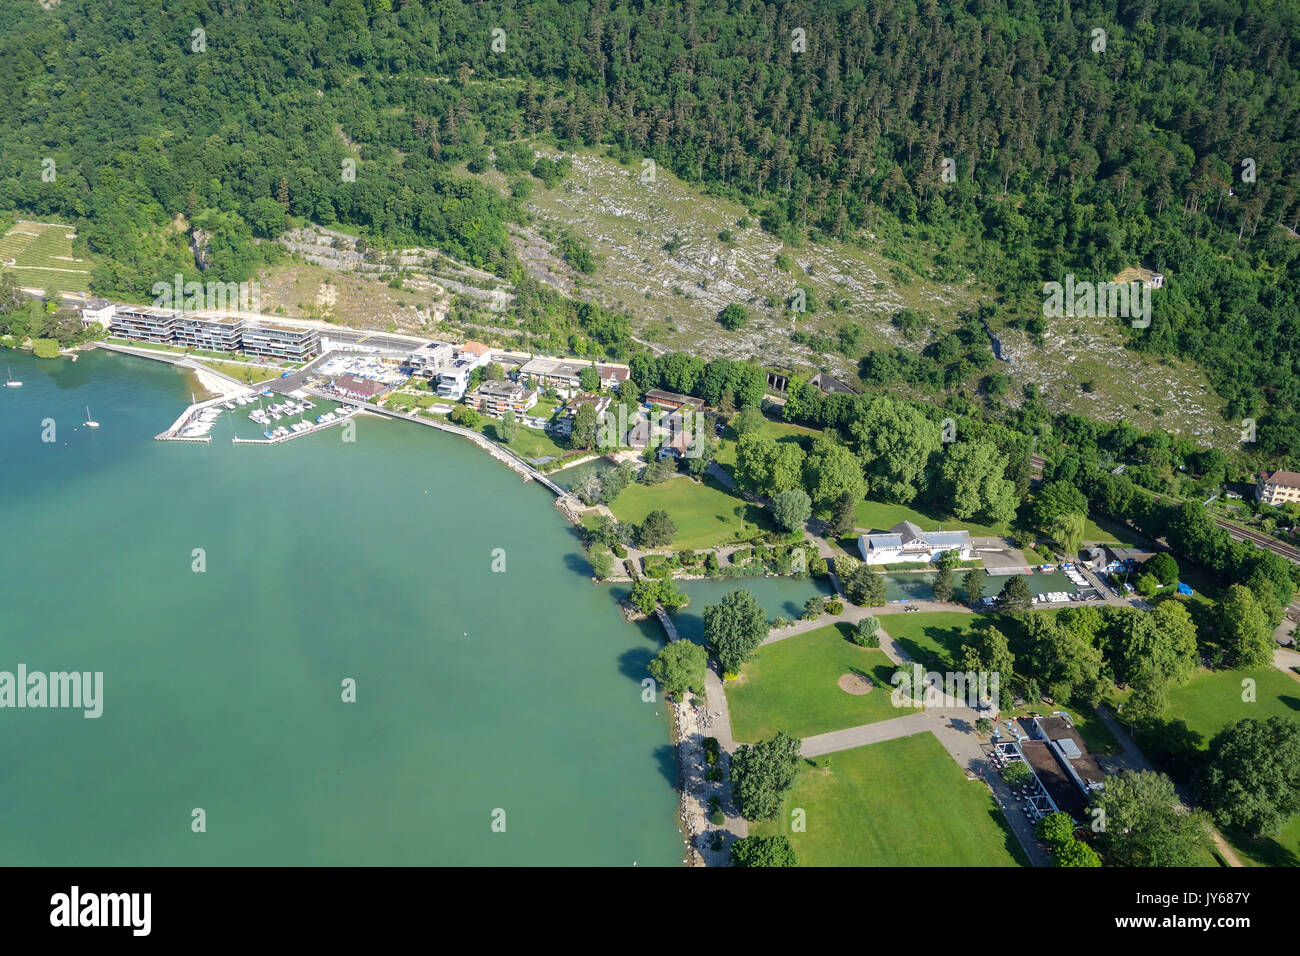 Luftaufnahme Bielersee *** Local Caption *** Berne, Biel, Lake Biel, Landscape, Tourism, Lake, Switzerland, Aerial View, aerial photography, from abov - Stock Image